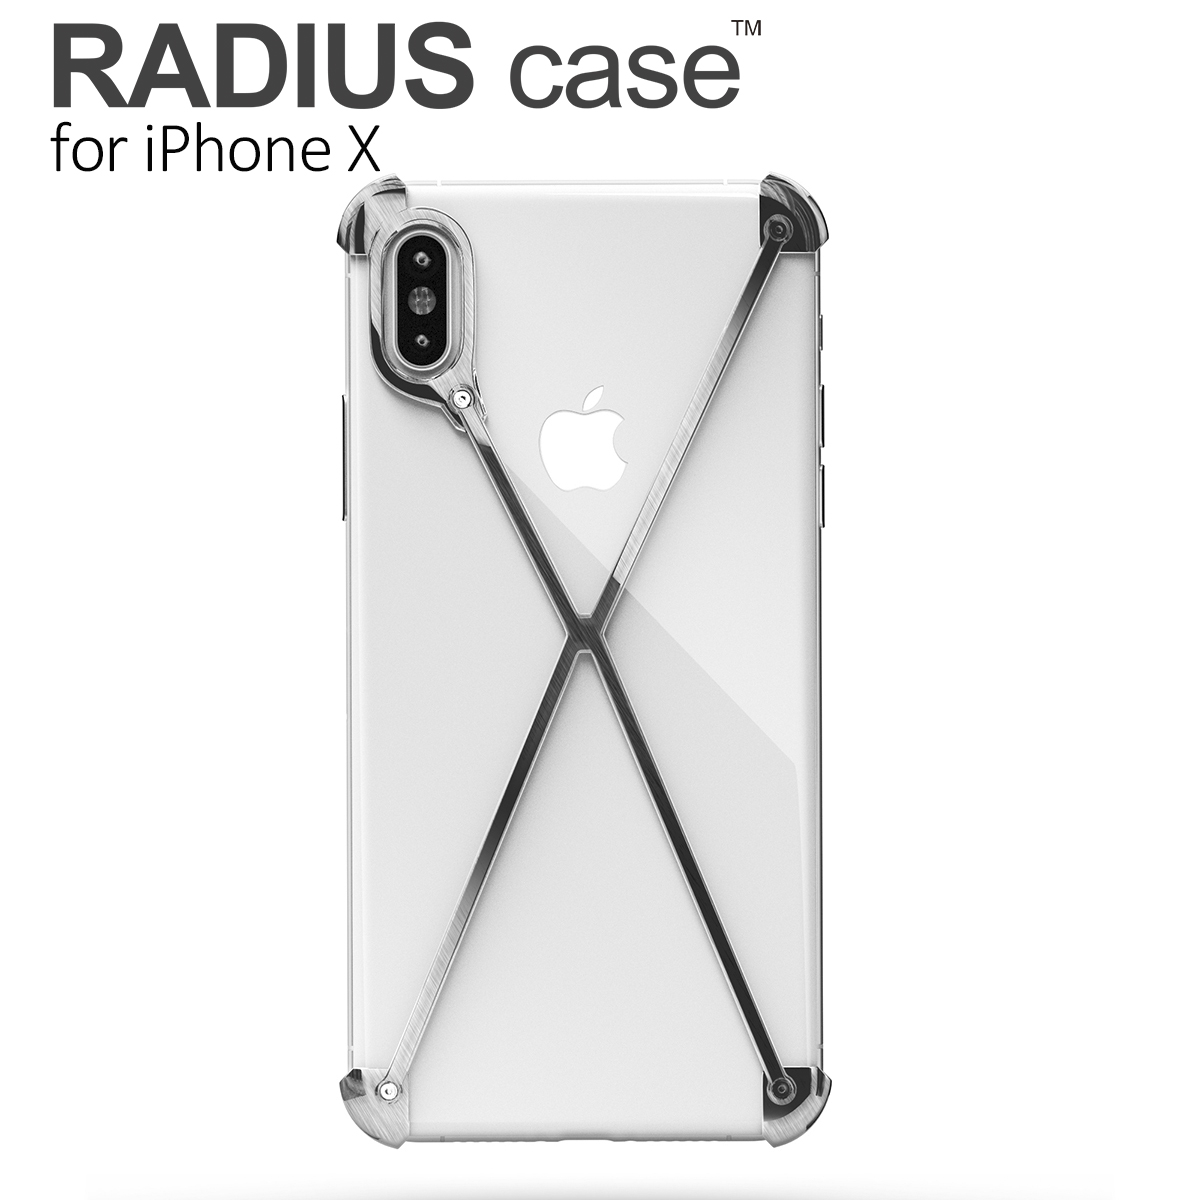 RADIUS case Brushed for iPhone X by mod-3/ラディアス ブラッシュ iPhone X カバー アイフォンテンケース アルミフレーム ギフト あす楽